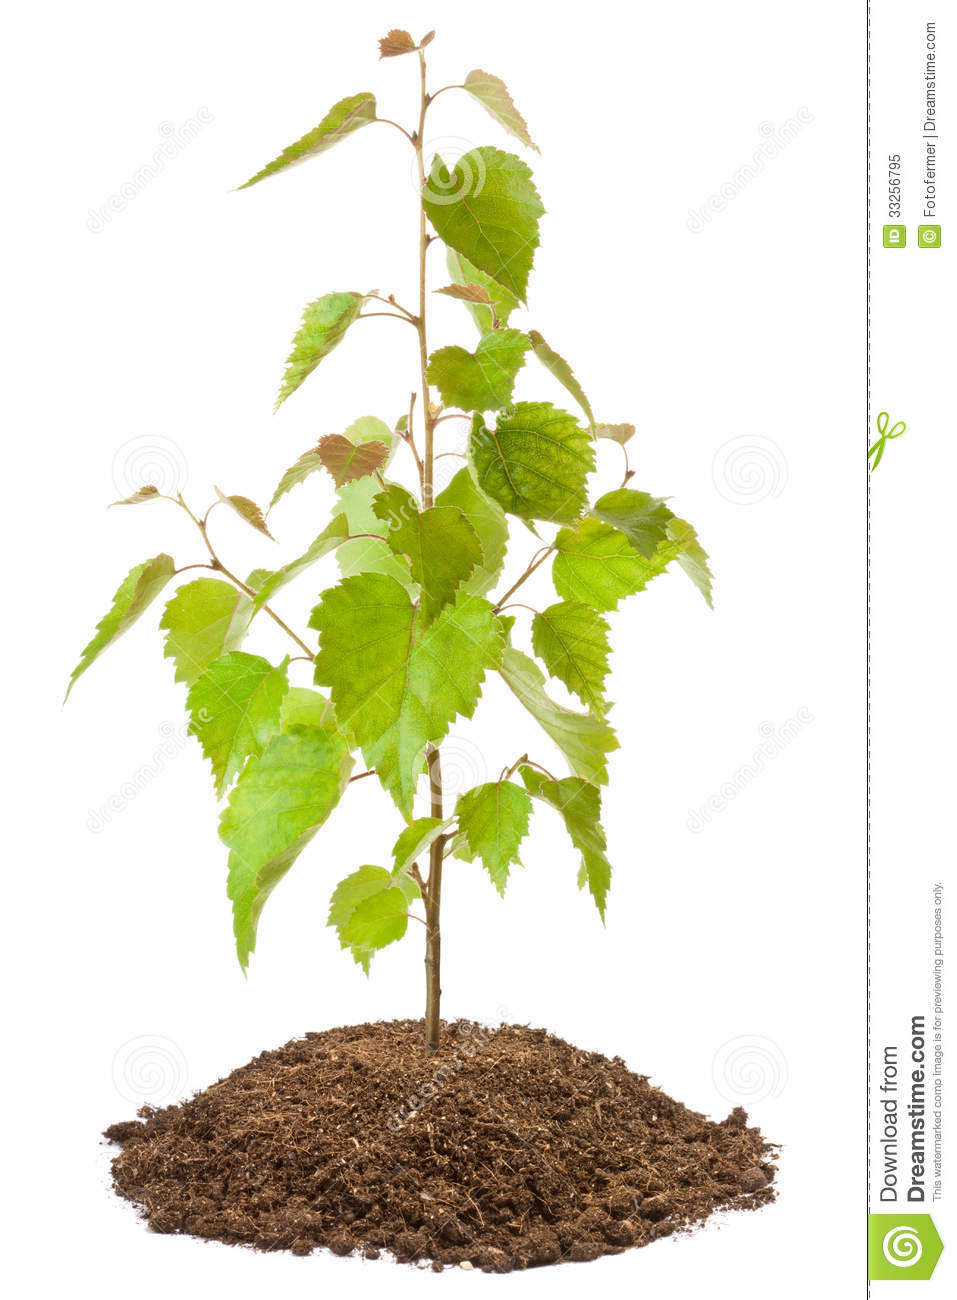 Young birch sapling royalty free stock photo image 33256795 for Tree sapling